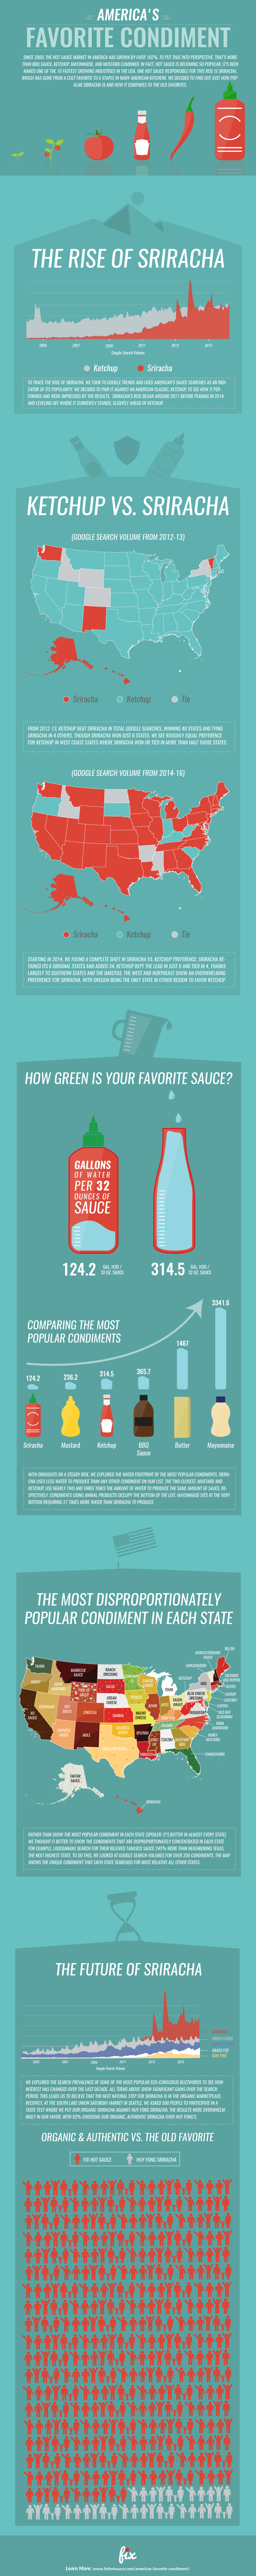 sriracha-most-searched-condiment-on-google